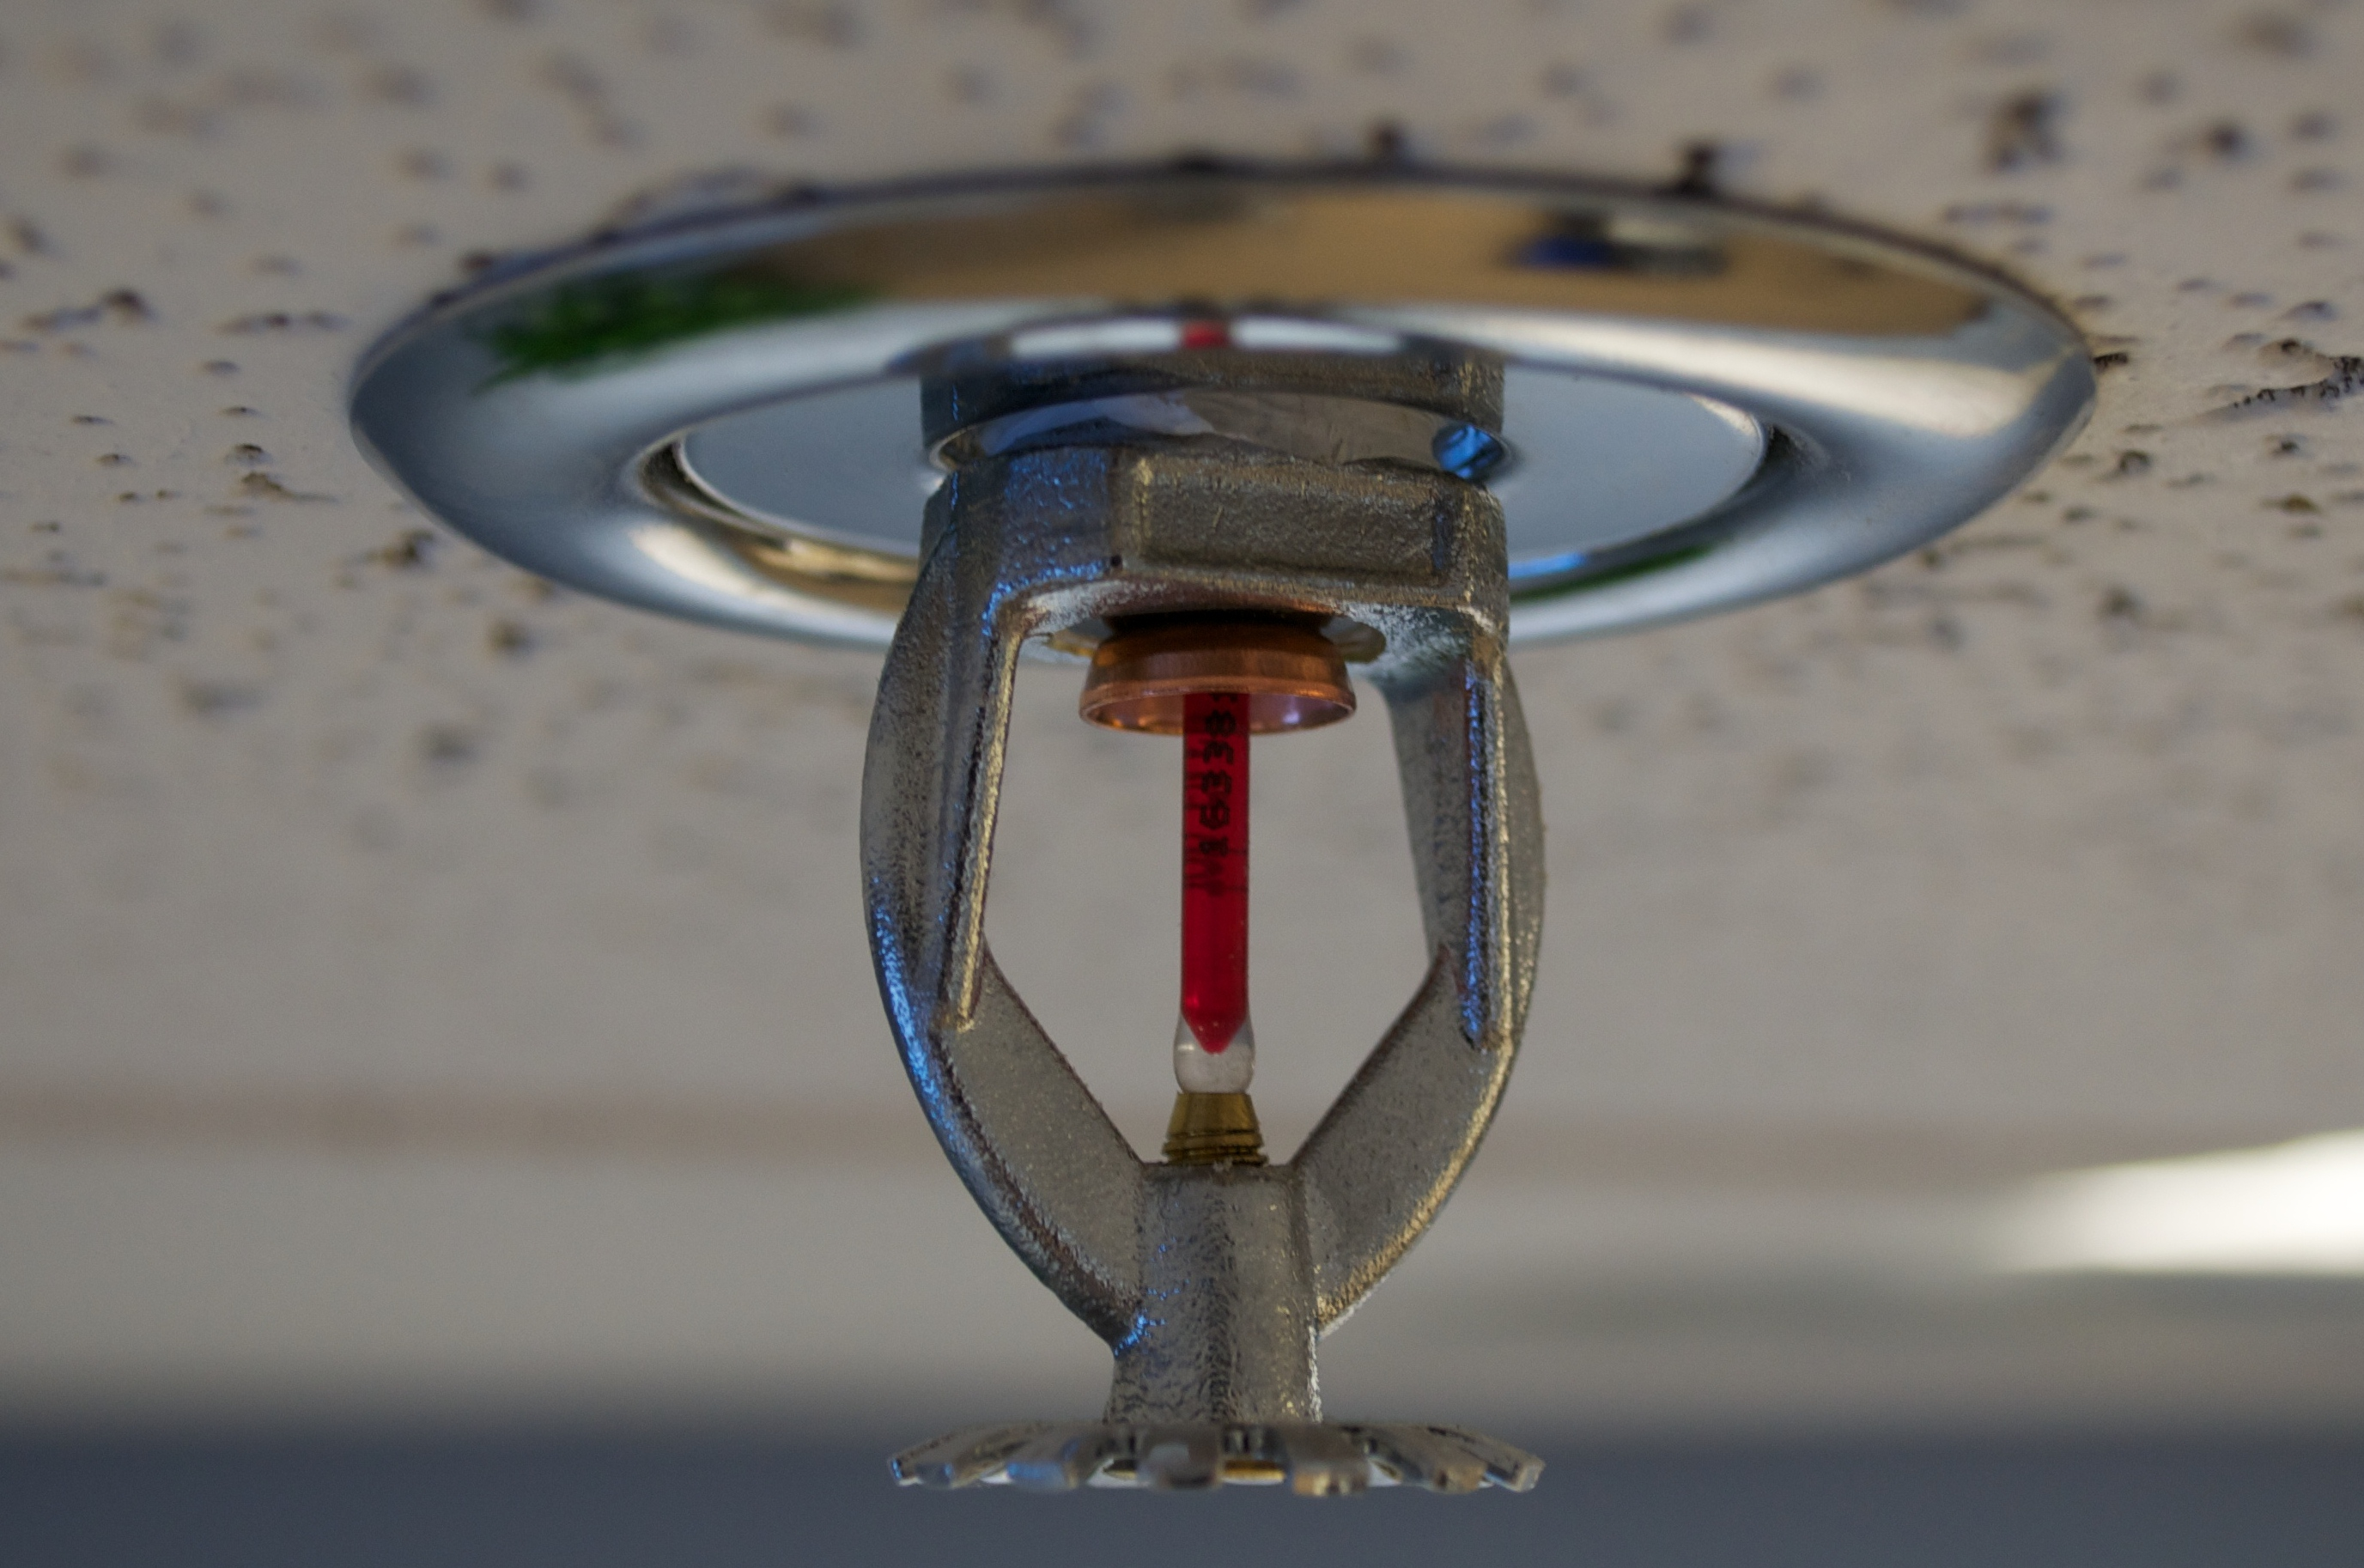 Picture of phoenix fire sprinklers